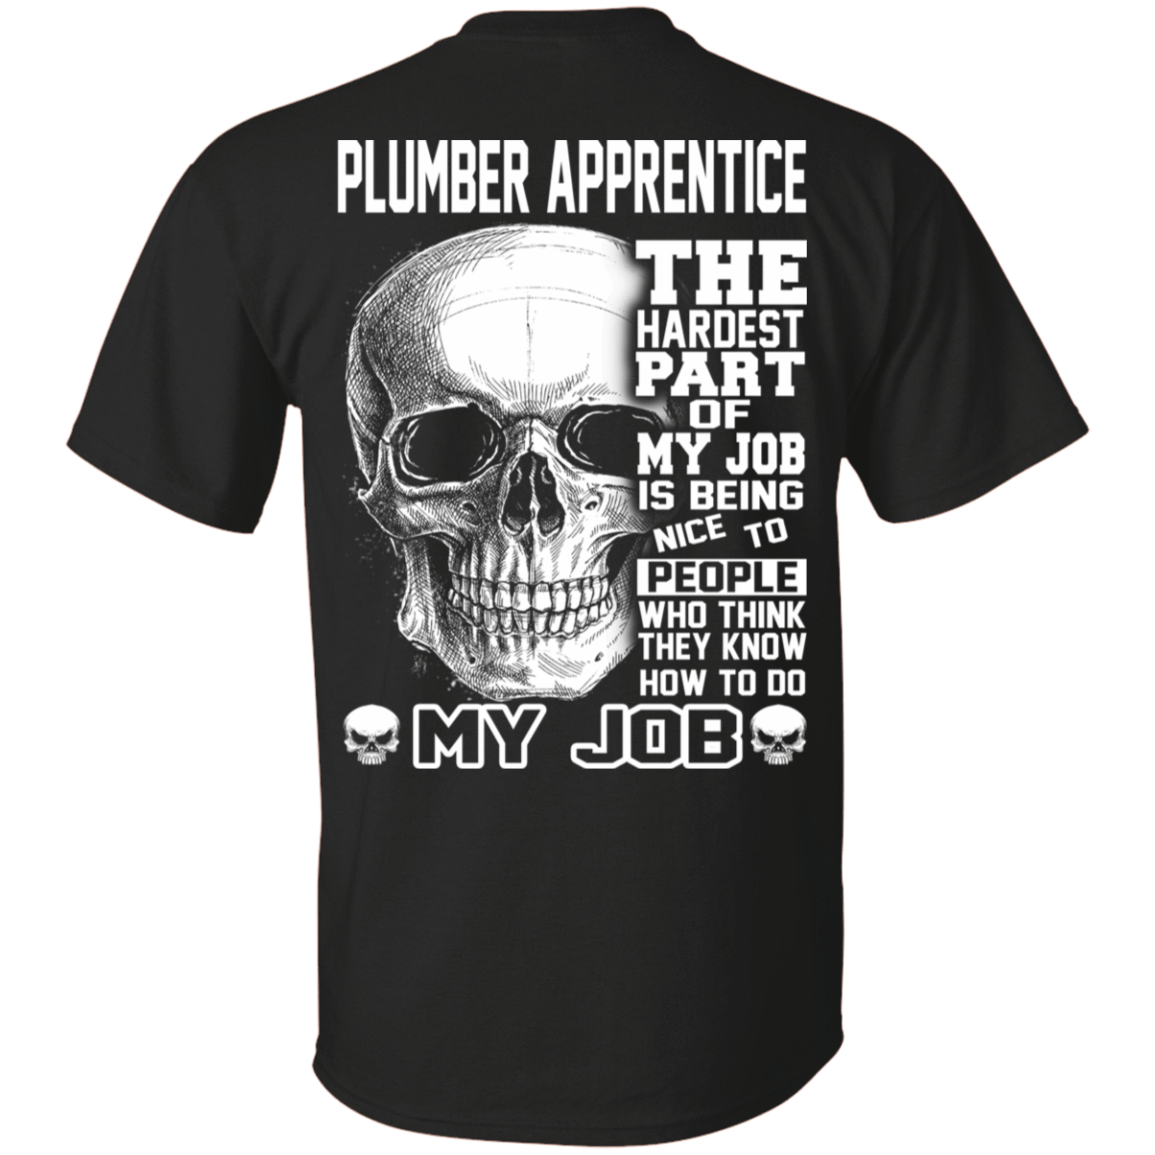 Plumber Apprentice The Hardest Part Of My Job 22-113-72369945-252 - Tee Ript